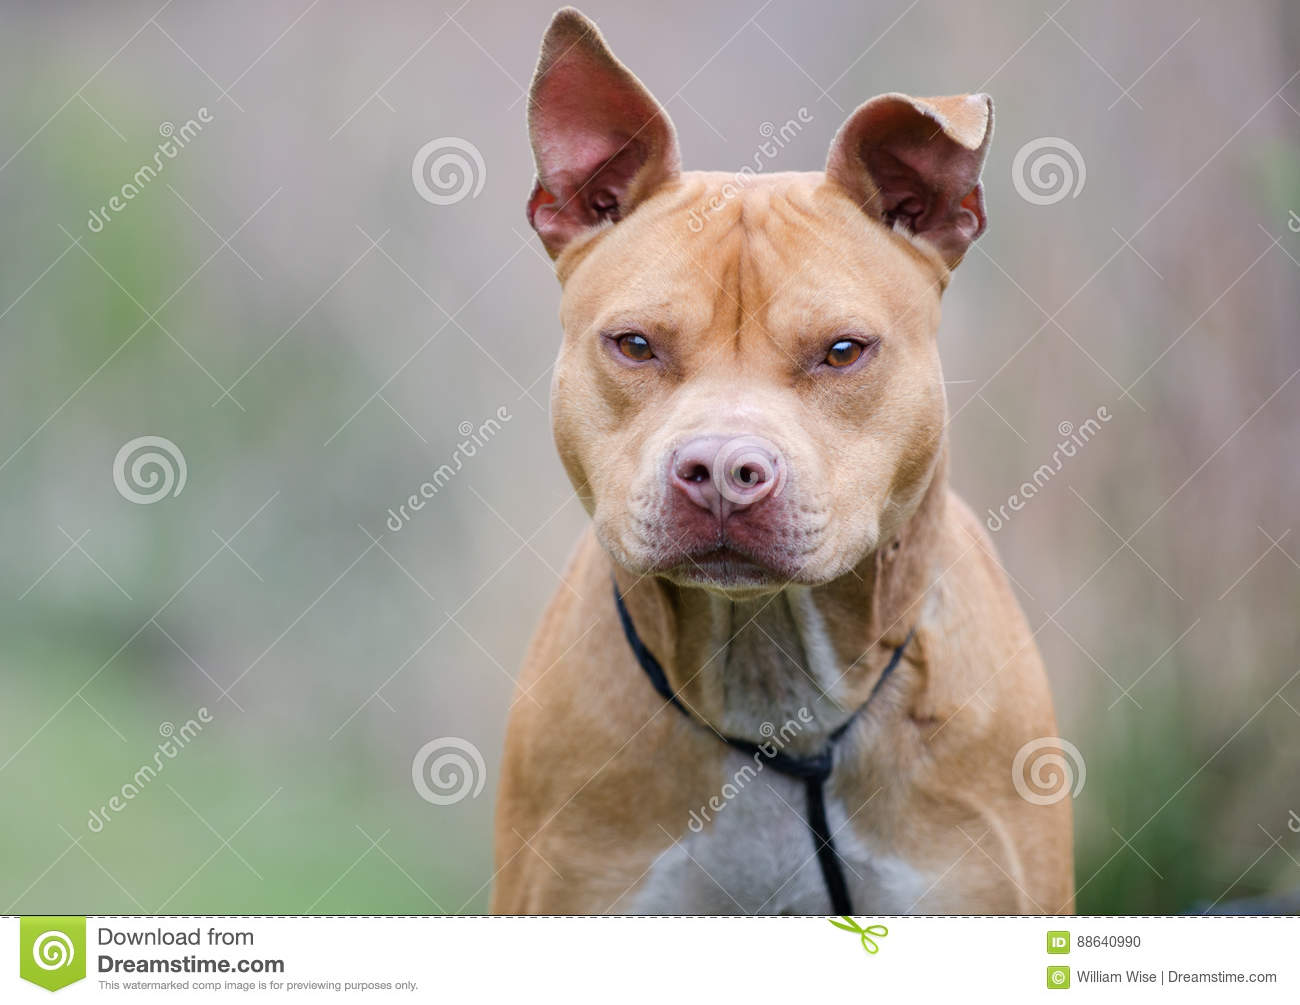 Rednose American Pitbull Terrier Dog Walton County Animal Shelter